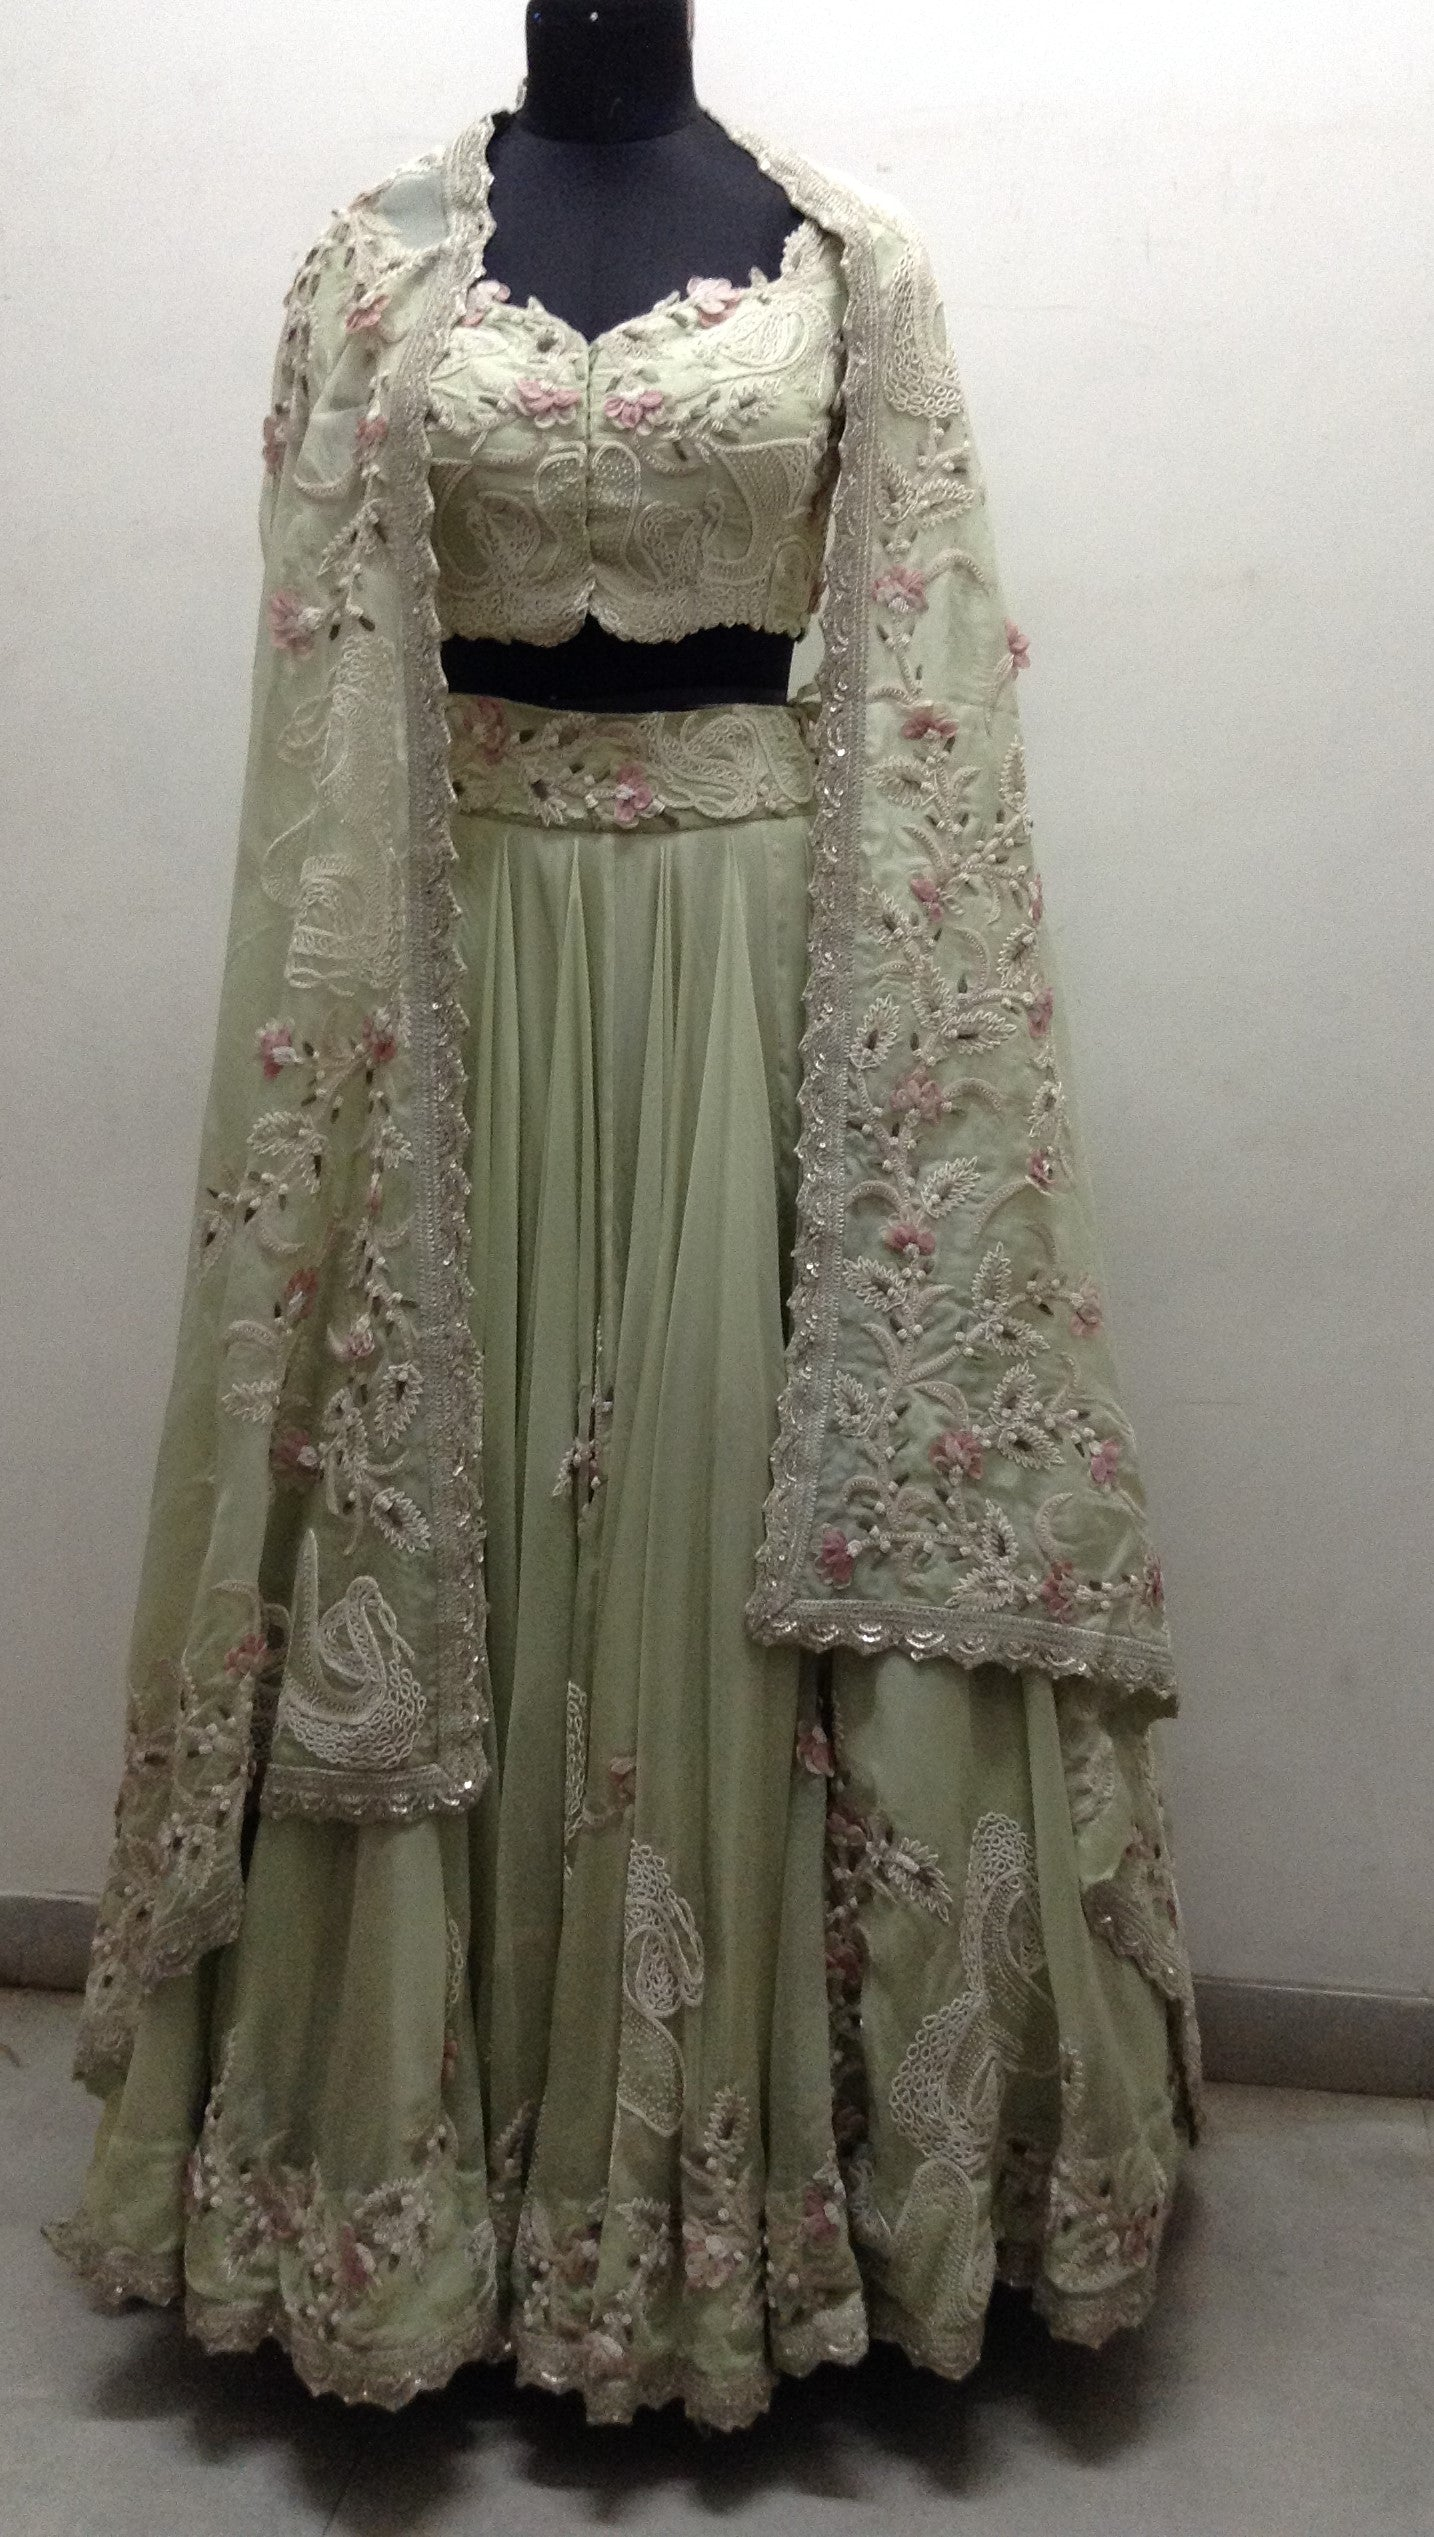 Organza 3D Tulip Lehenga - The Grand Trunk